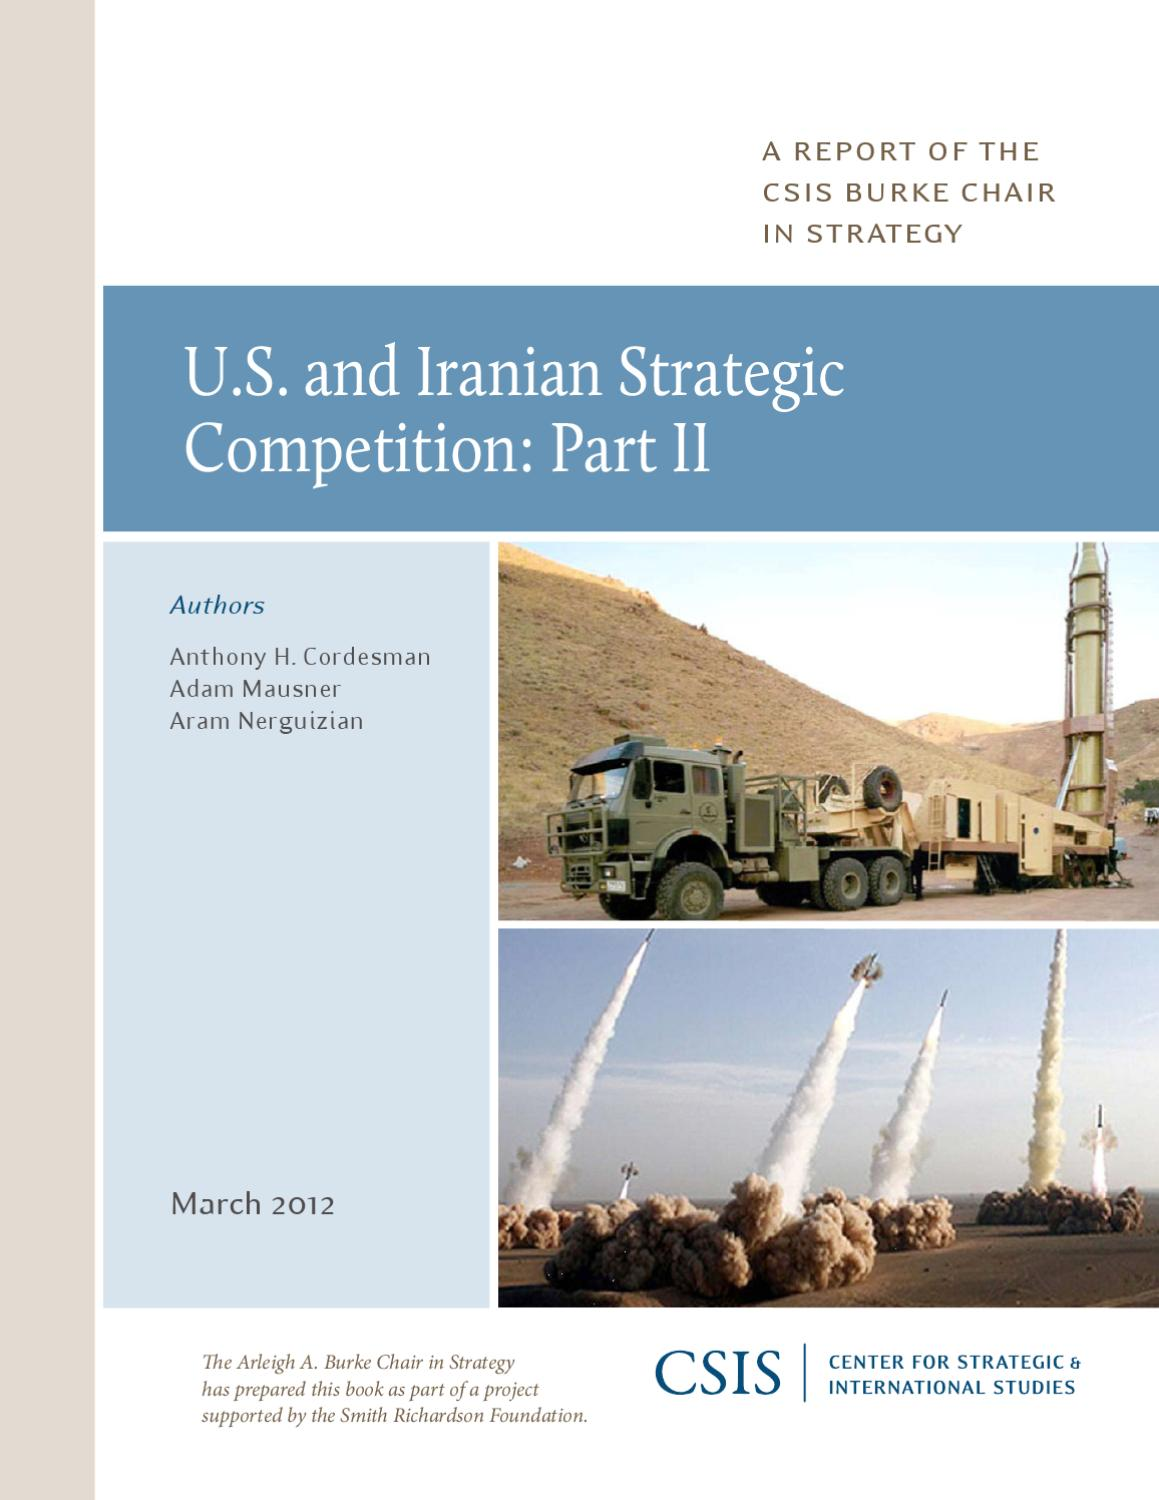 U.S. and Iranian Strategic Competition part 2 of 2 by CSIS Center for  Strategic and International Studies - issuu